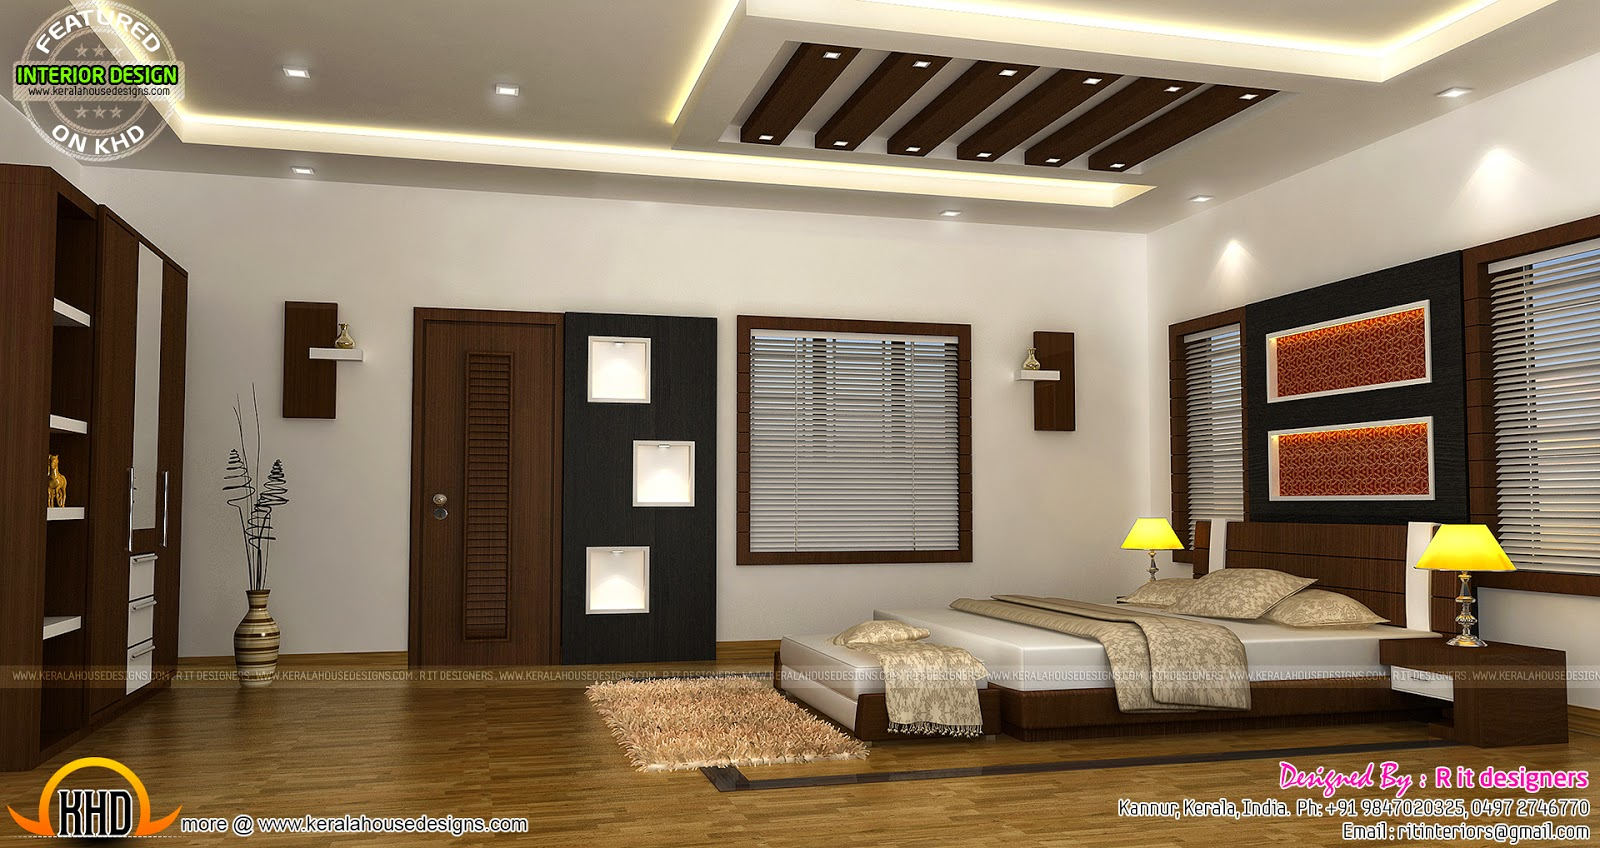 Bedroom Interior Design With Cost Kerala Home Design And: house design inside